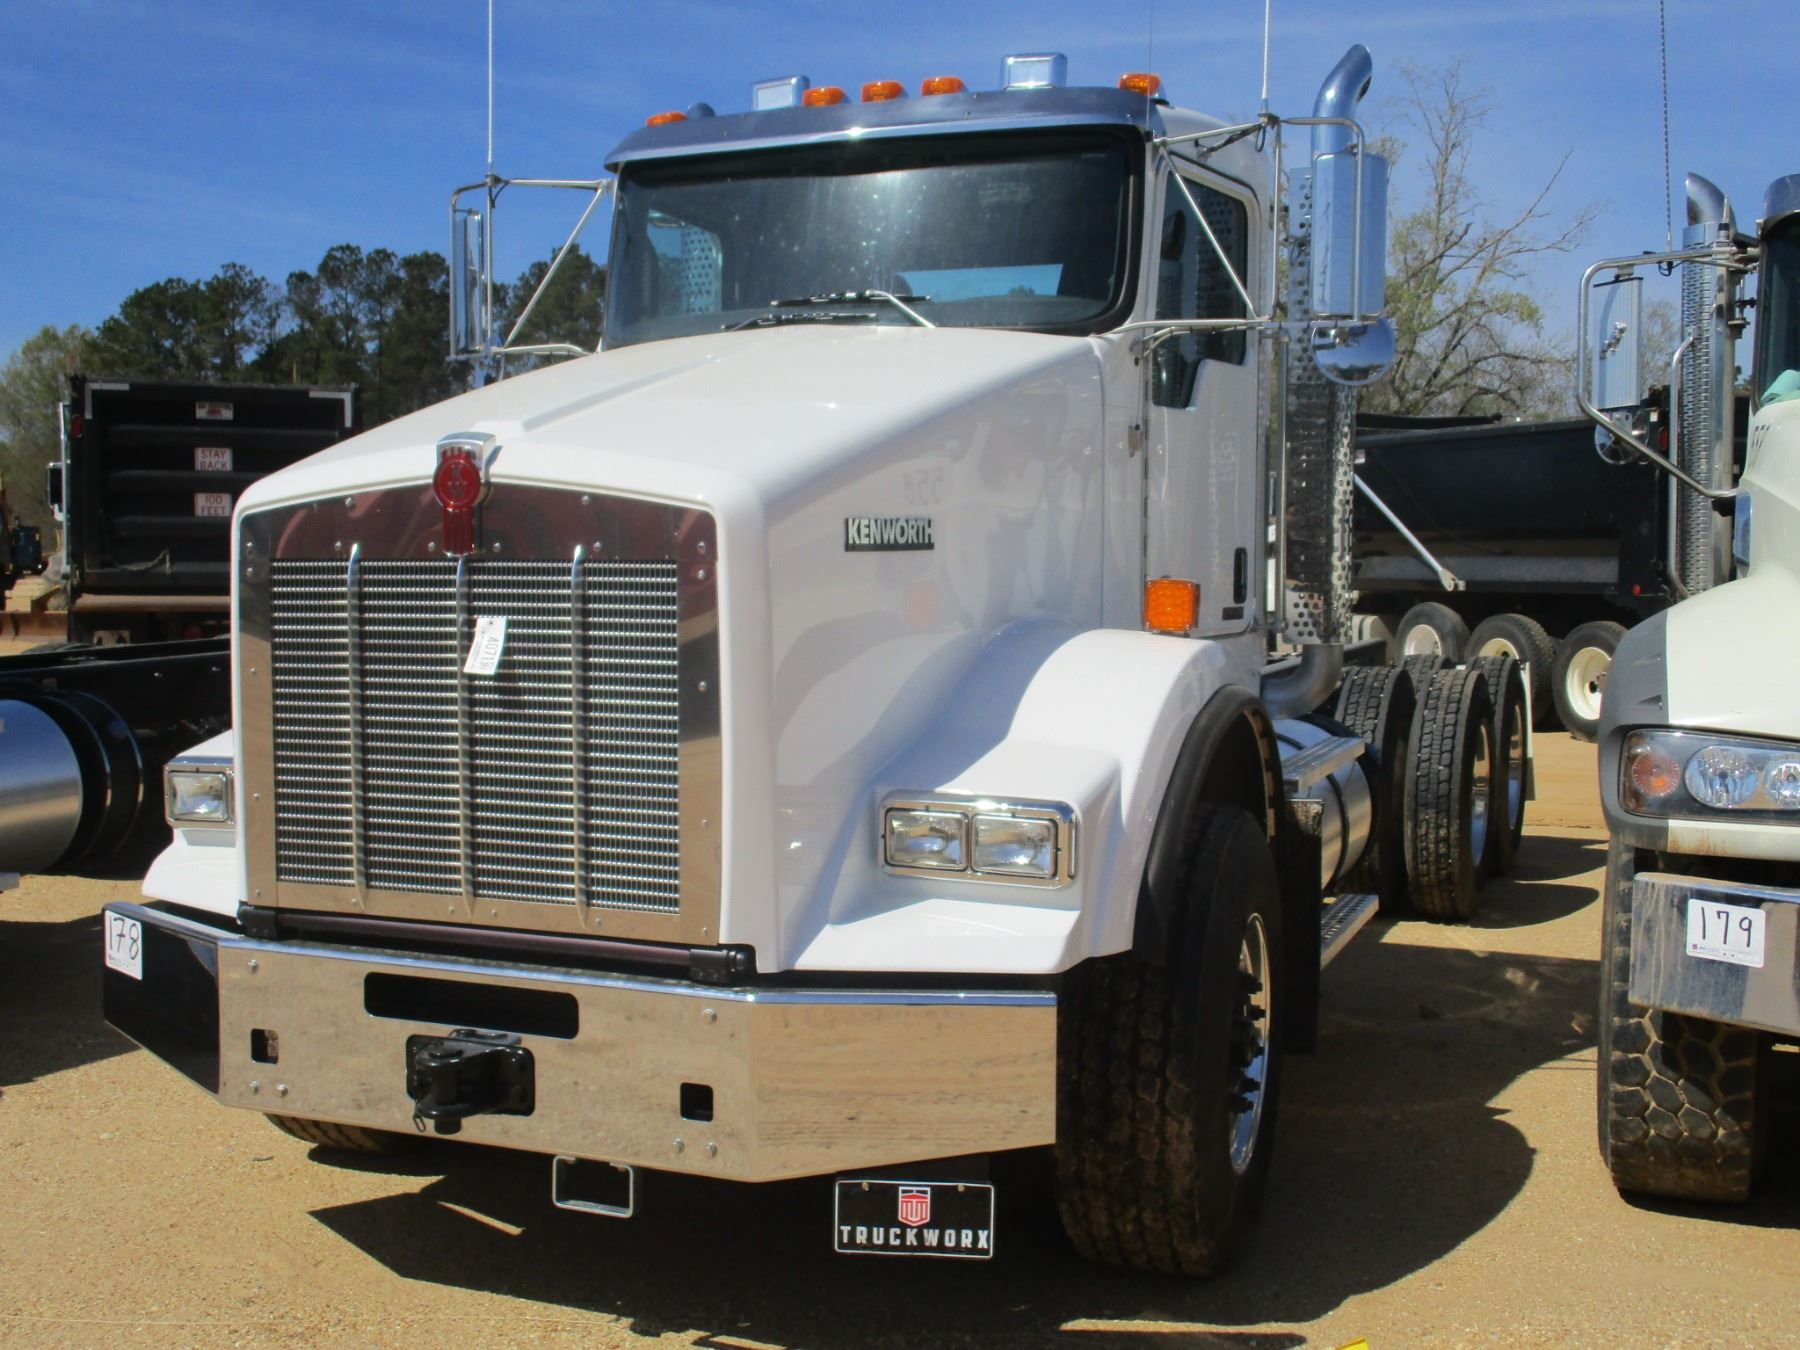 hight resolution of image 1 2018 kenworth t800 cab chassis vin sn 1nkdl40x8jj205444